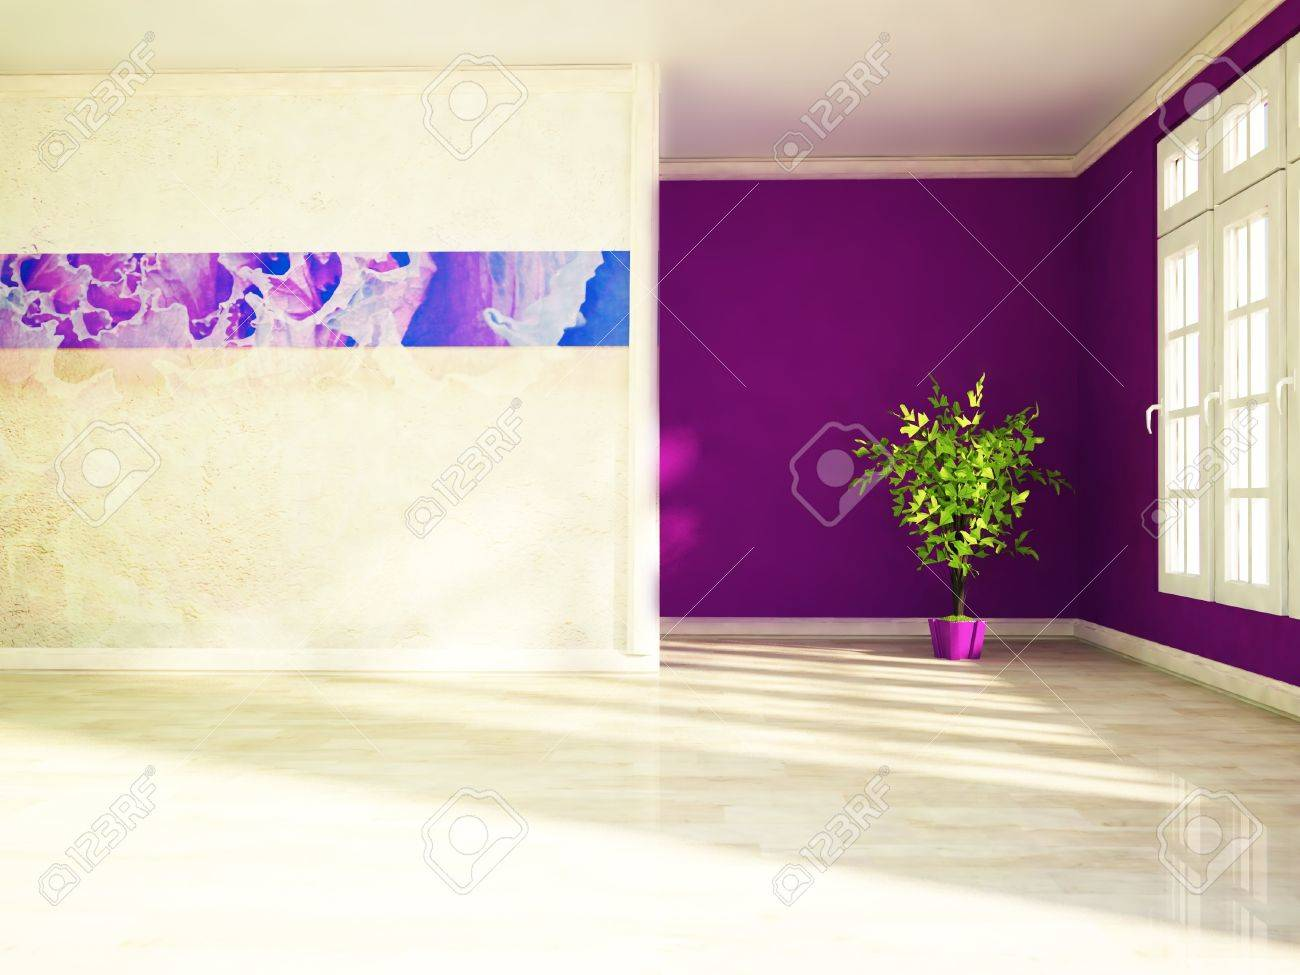 a green plant in the  room near the window Stock Photo - 18233450